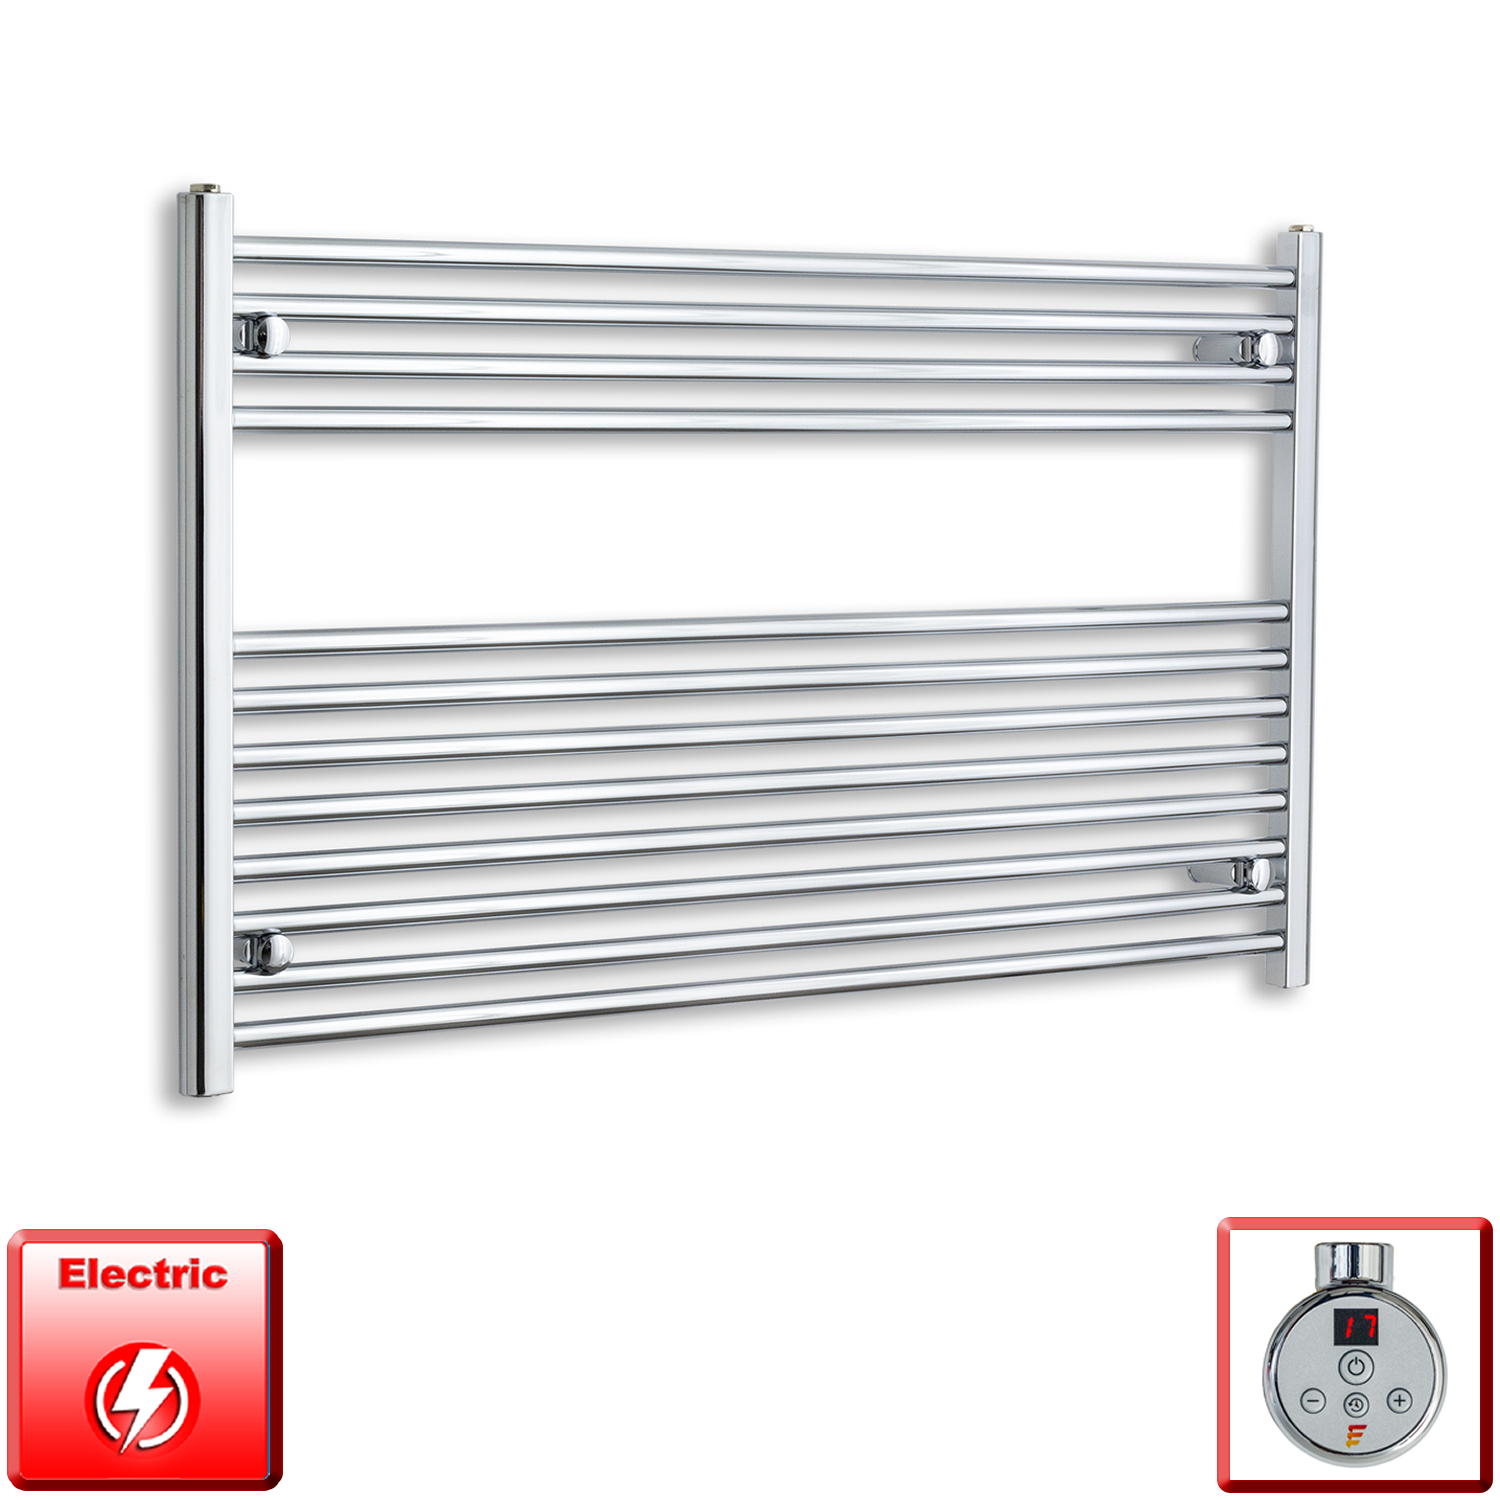 1200mm Wide 700mm High Pre-Filled Chrome Electric Towel Rail Radiator With Thermostatic DIGI Element